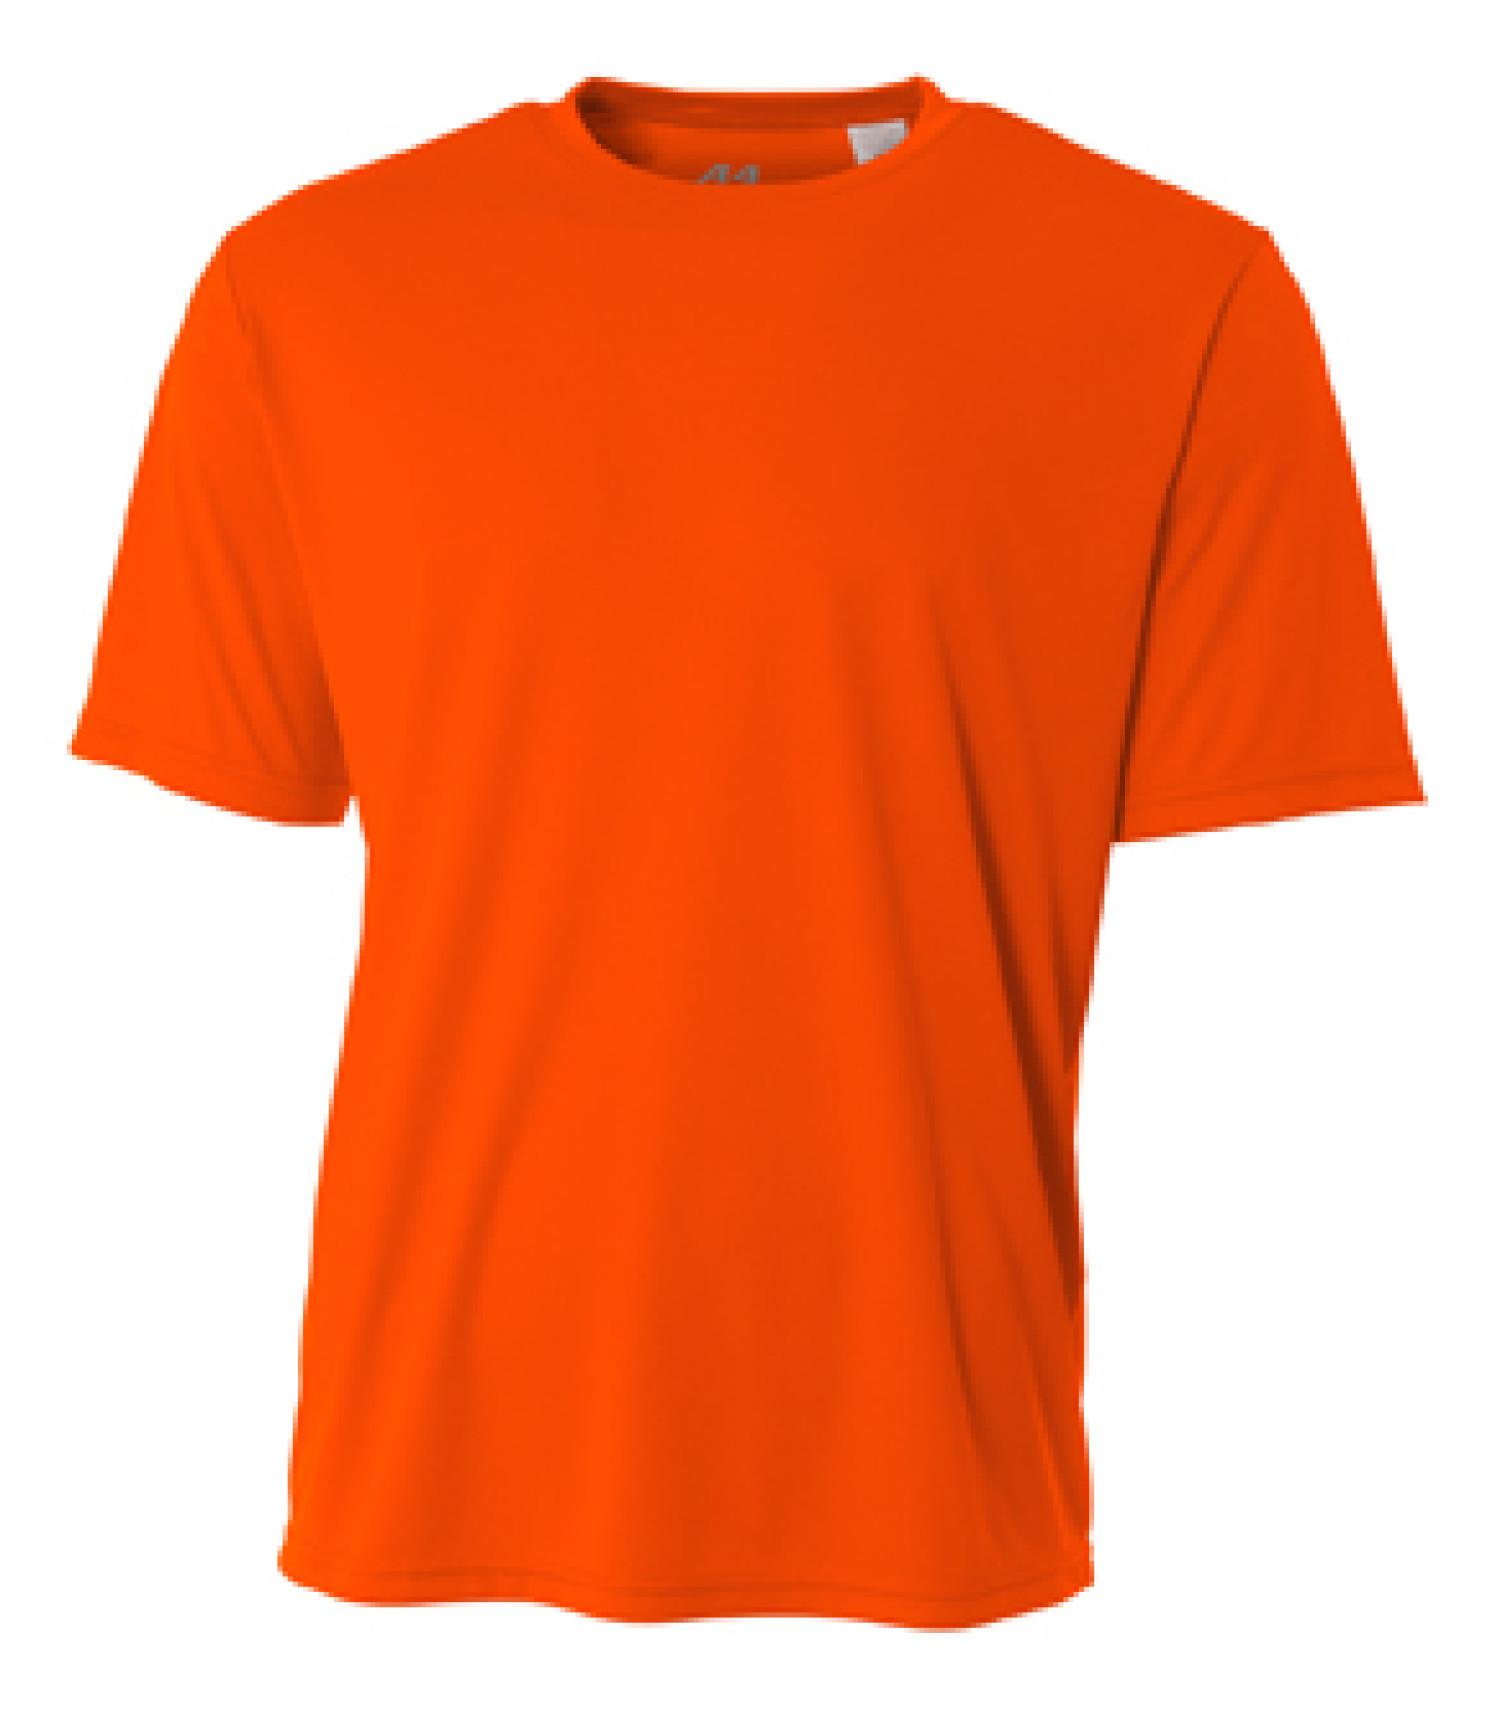 A4 - A4 Adult Polyester Spandex Long Sleeve Compression T